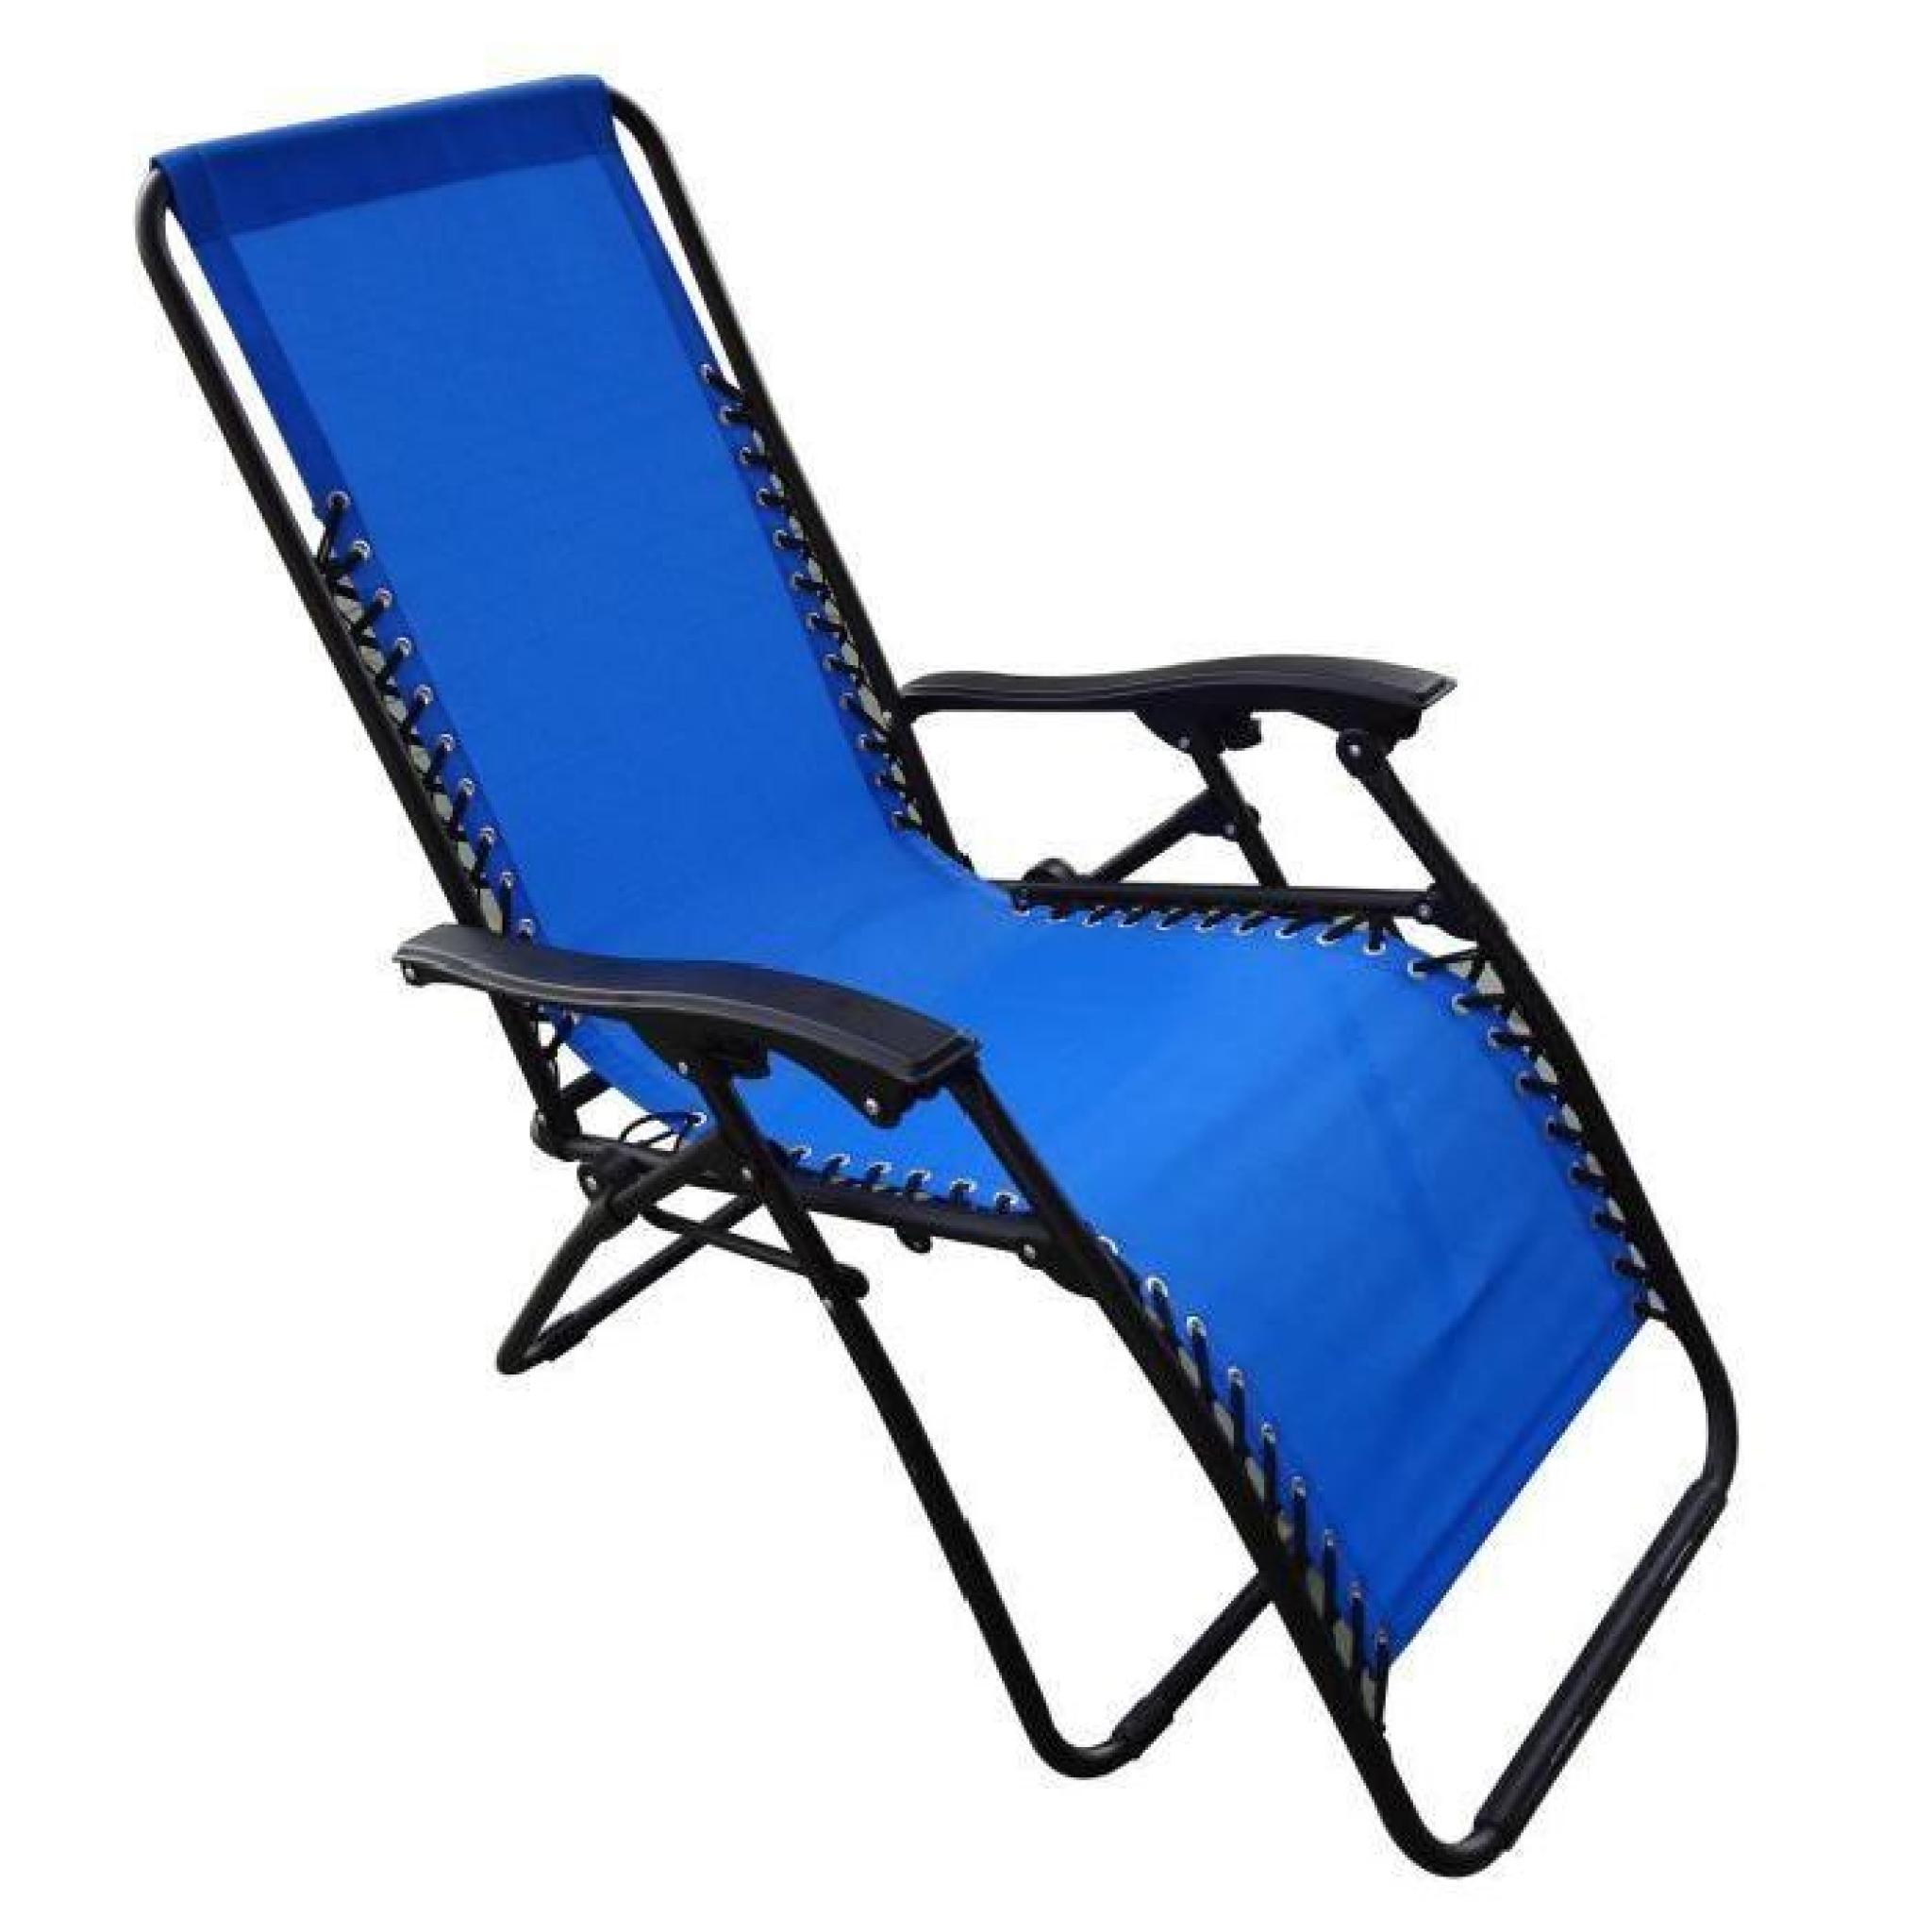 chaise pliante en toile camping bleu achat vente transat de jardin pas cher. Black Bedroom Furniture Sets. Home Design Ideas